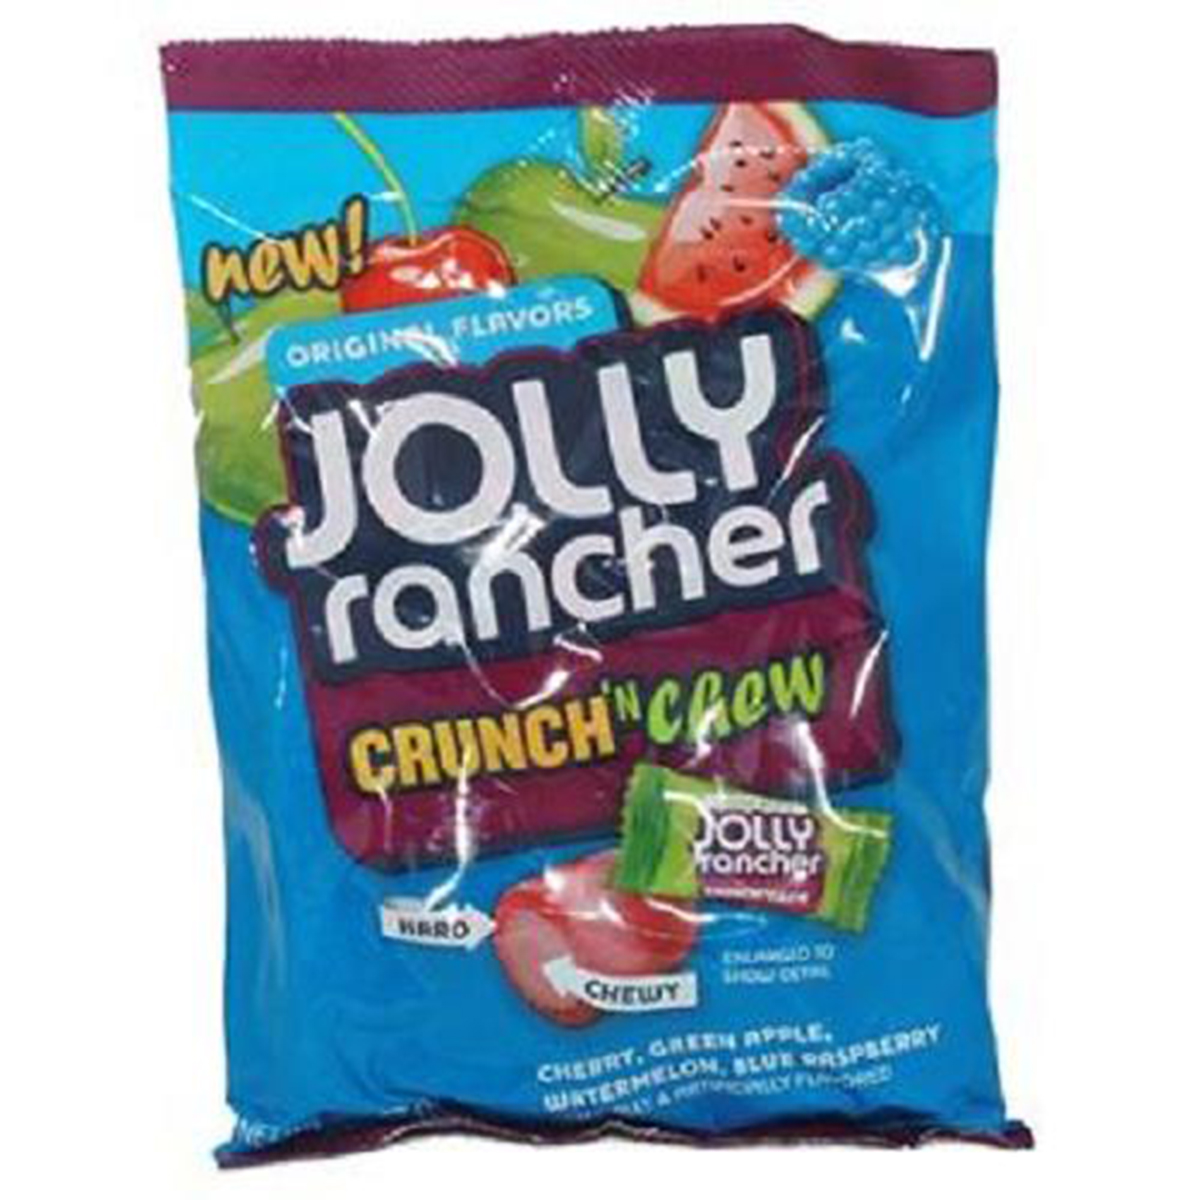 Jolly Rancher Crunch 'N Chew, 6.5 Ounce (Pack of 12)